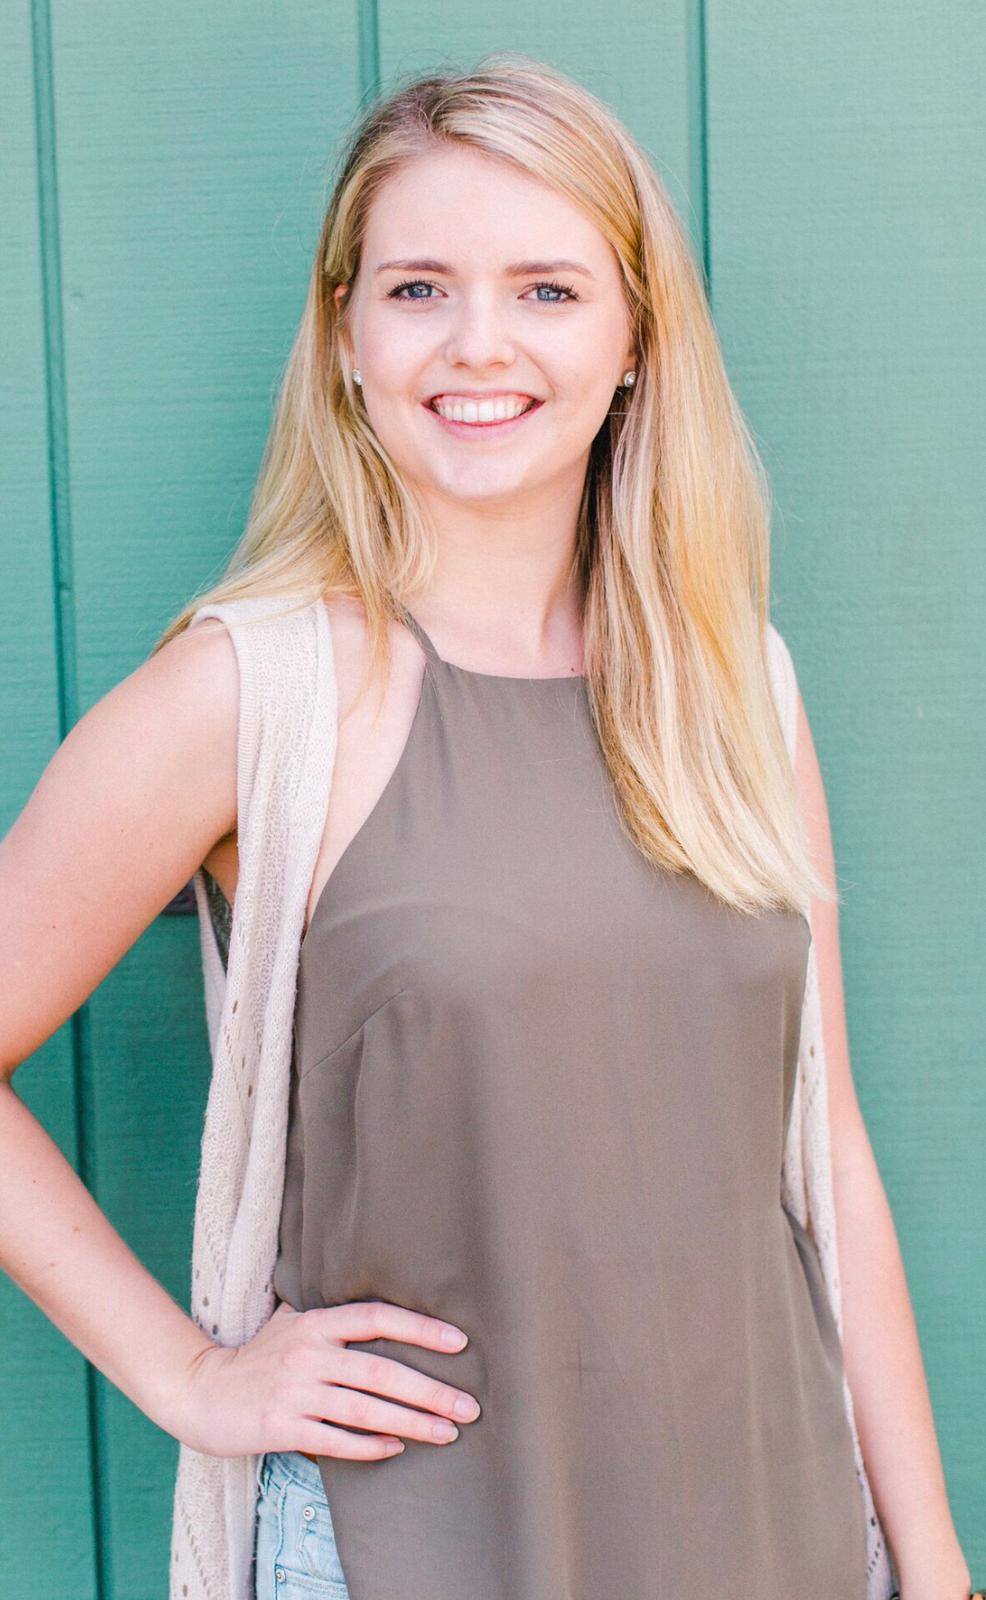 blonde woman smiling in front of teal wall